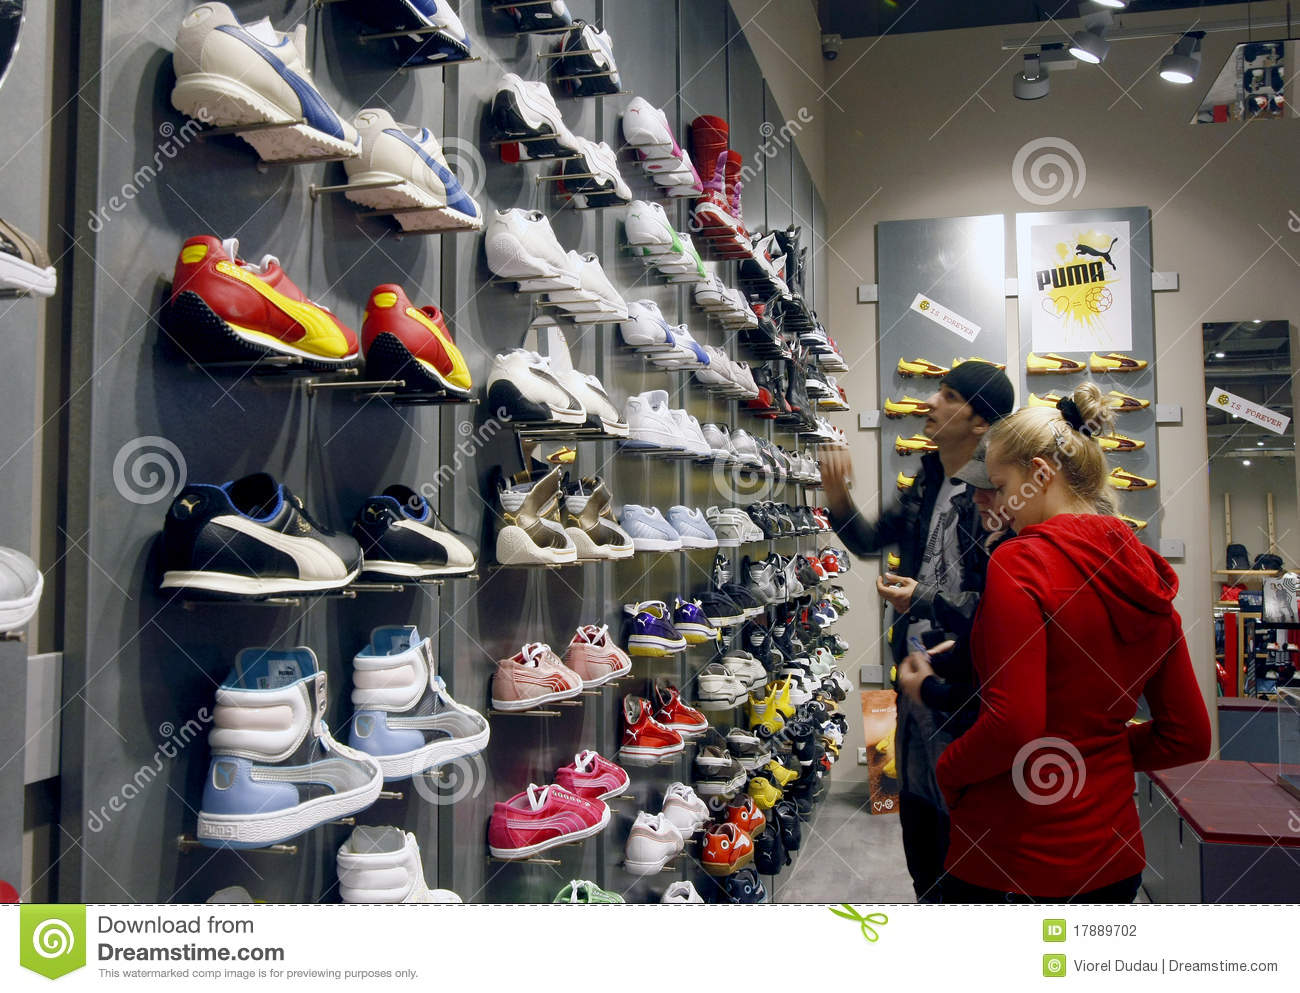 Customers are shopping for sports equipment shoes inside a Puma shop  located in a mall a474c16c239e